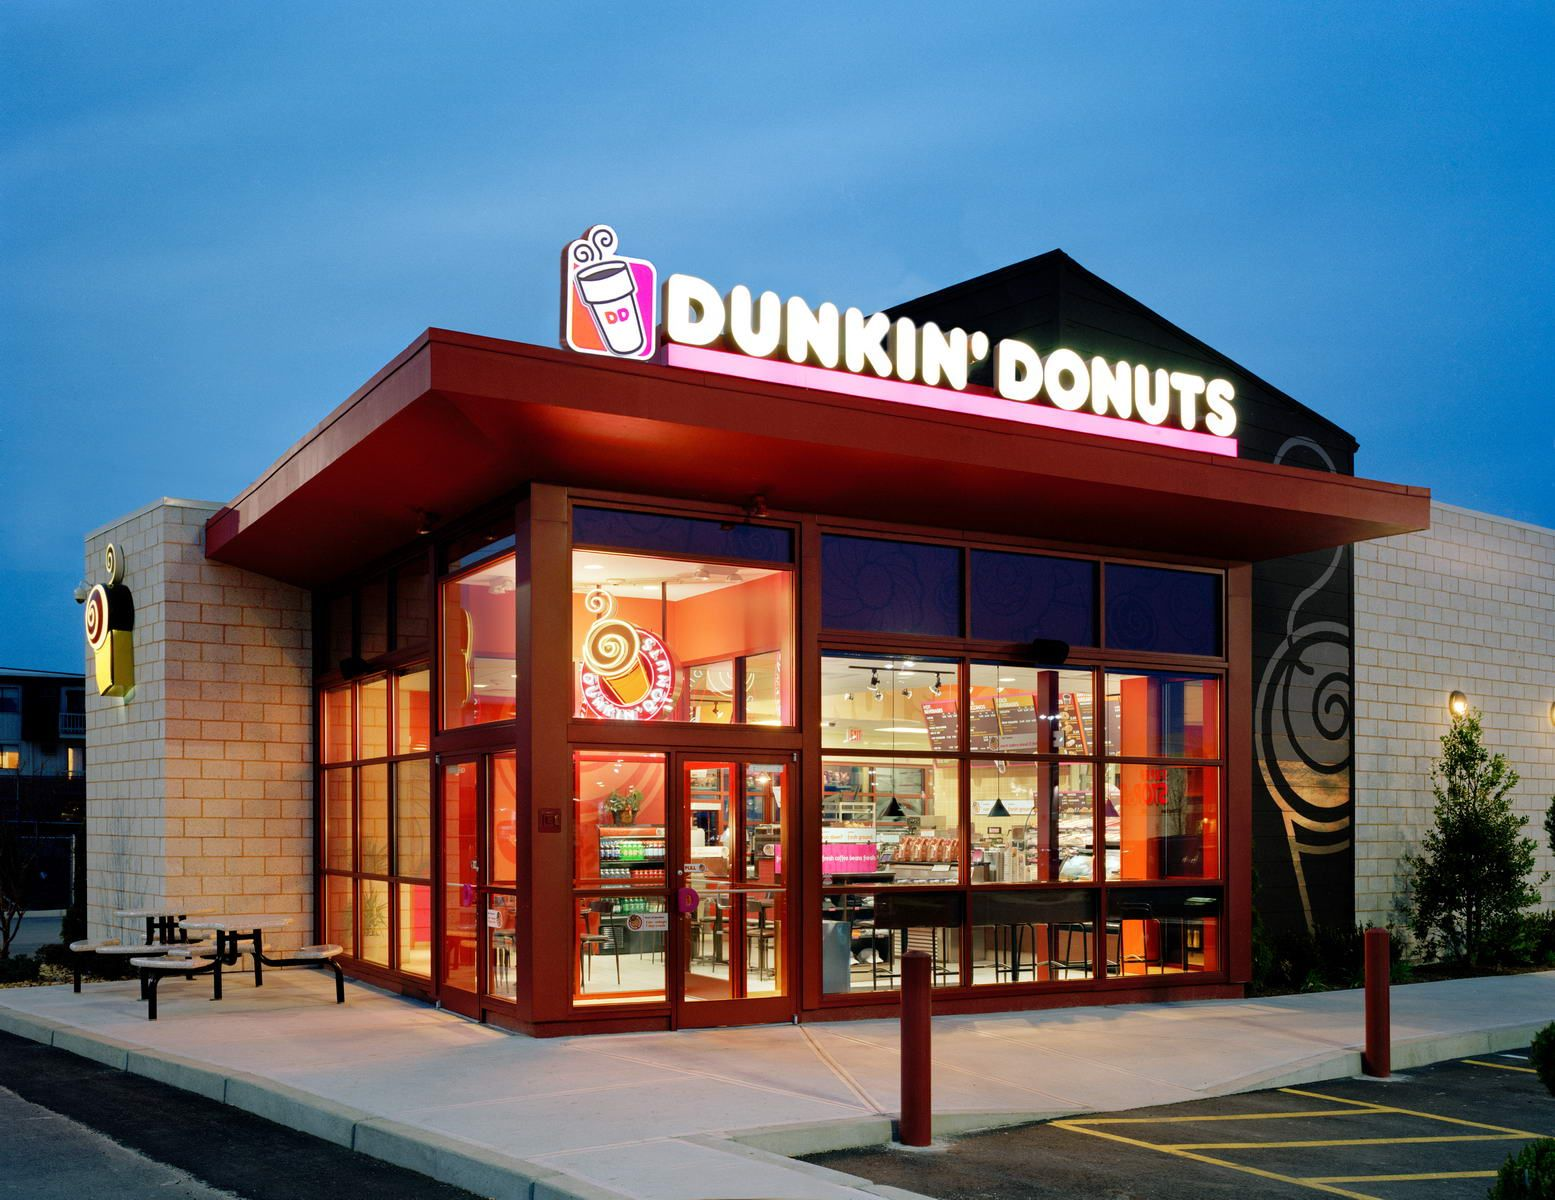 Pin By Audrey Craig On Current Fast Food Trends And Materials Dunkin Donuts Dunkin Donut Store